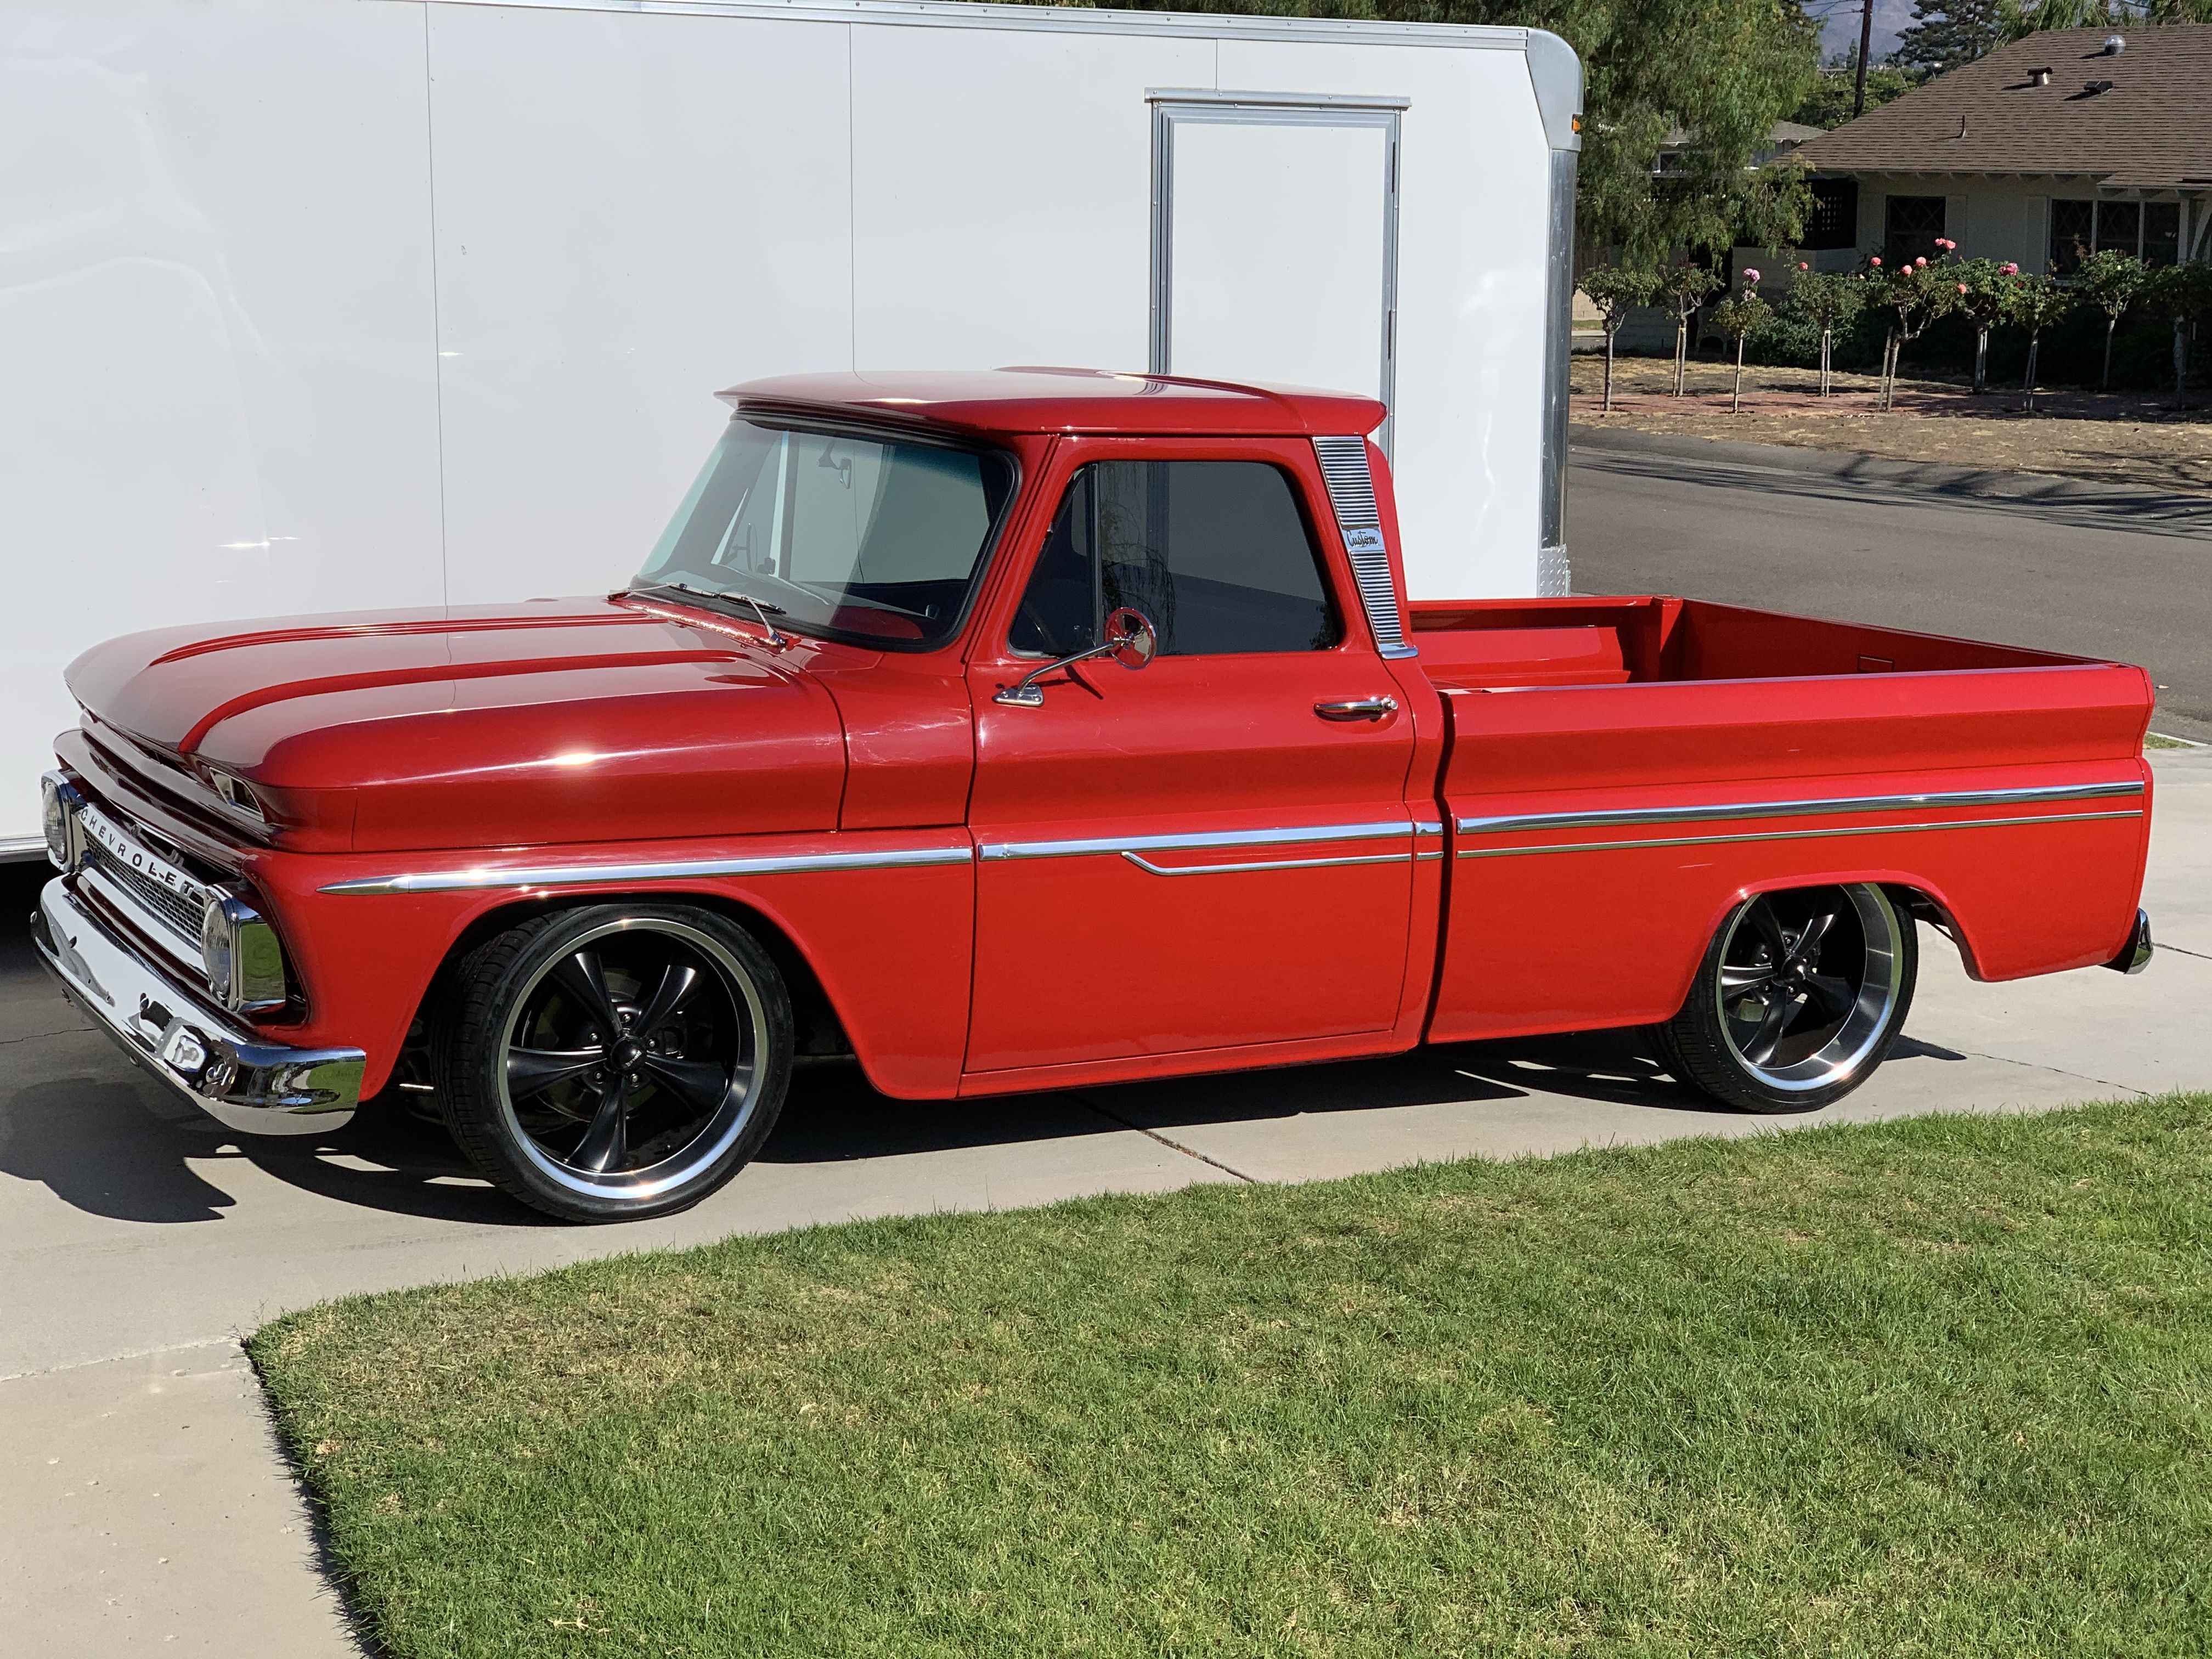 Red Sled 1966 Chevy C10 With Images 1966 Chevy Truck Chevy